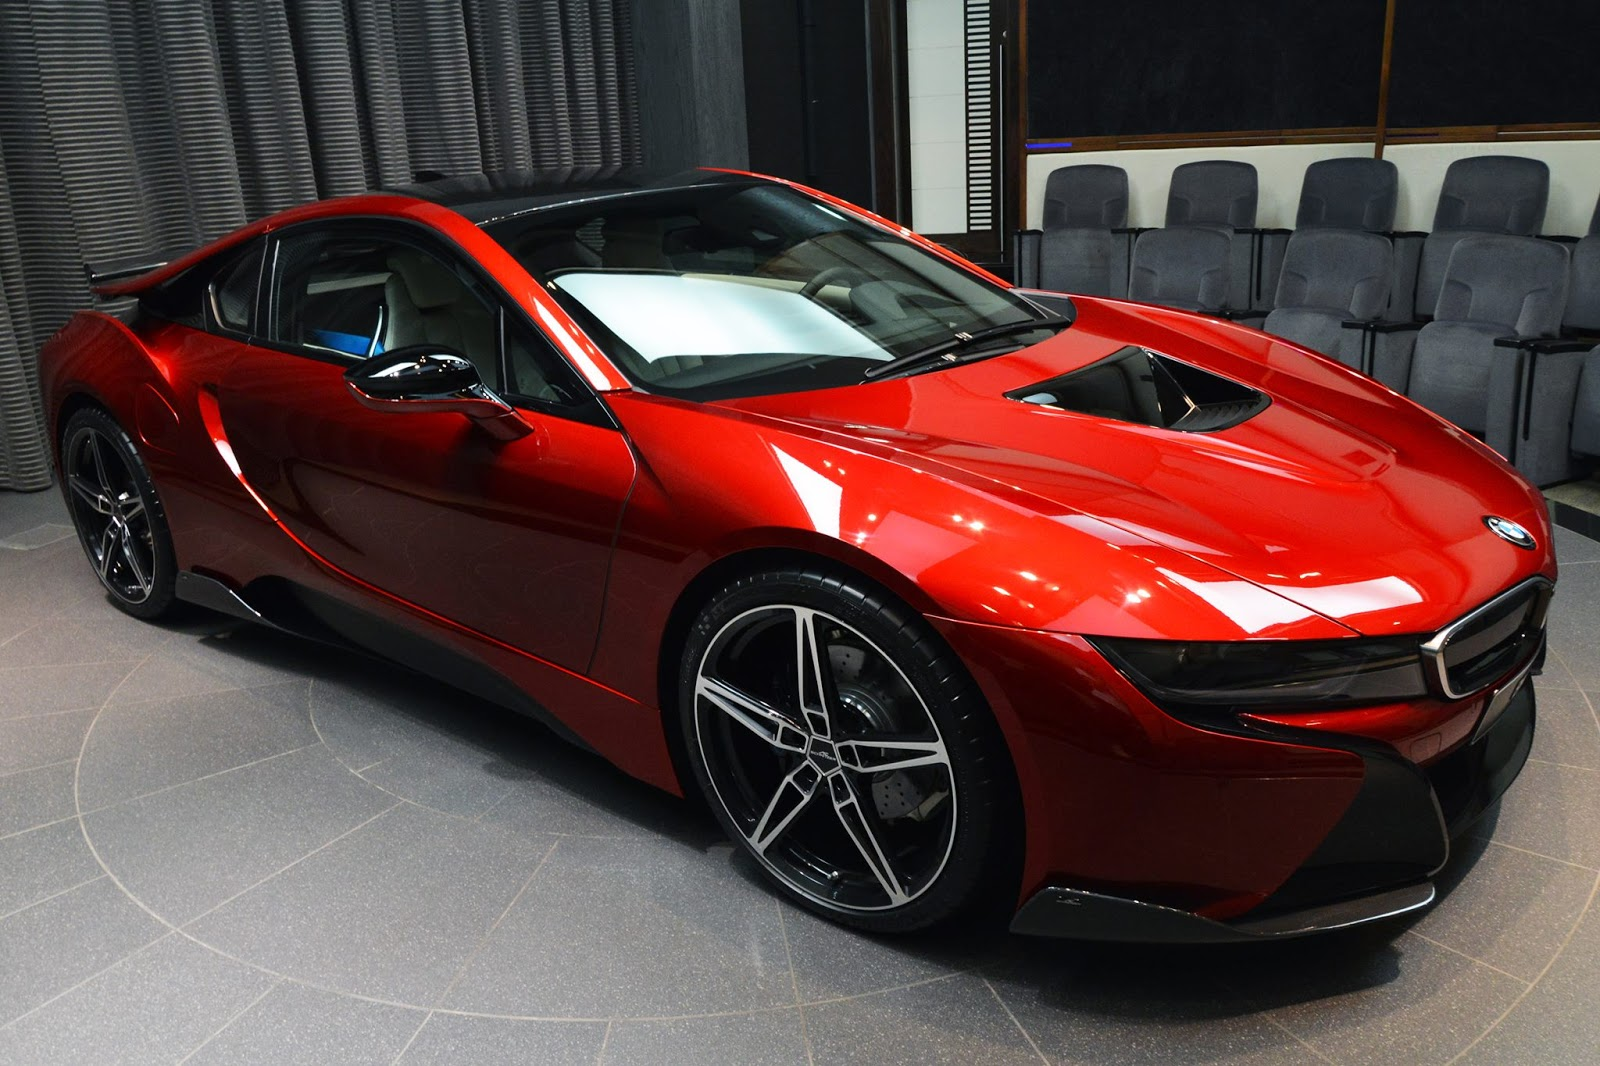 Lava Red Ac Schnitzer Bmw I8 Looks Seriously Impressive